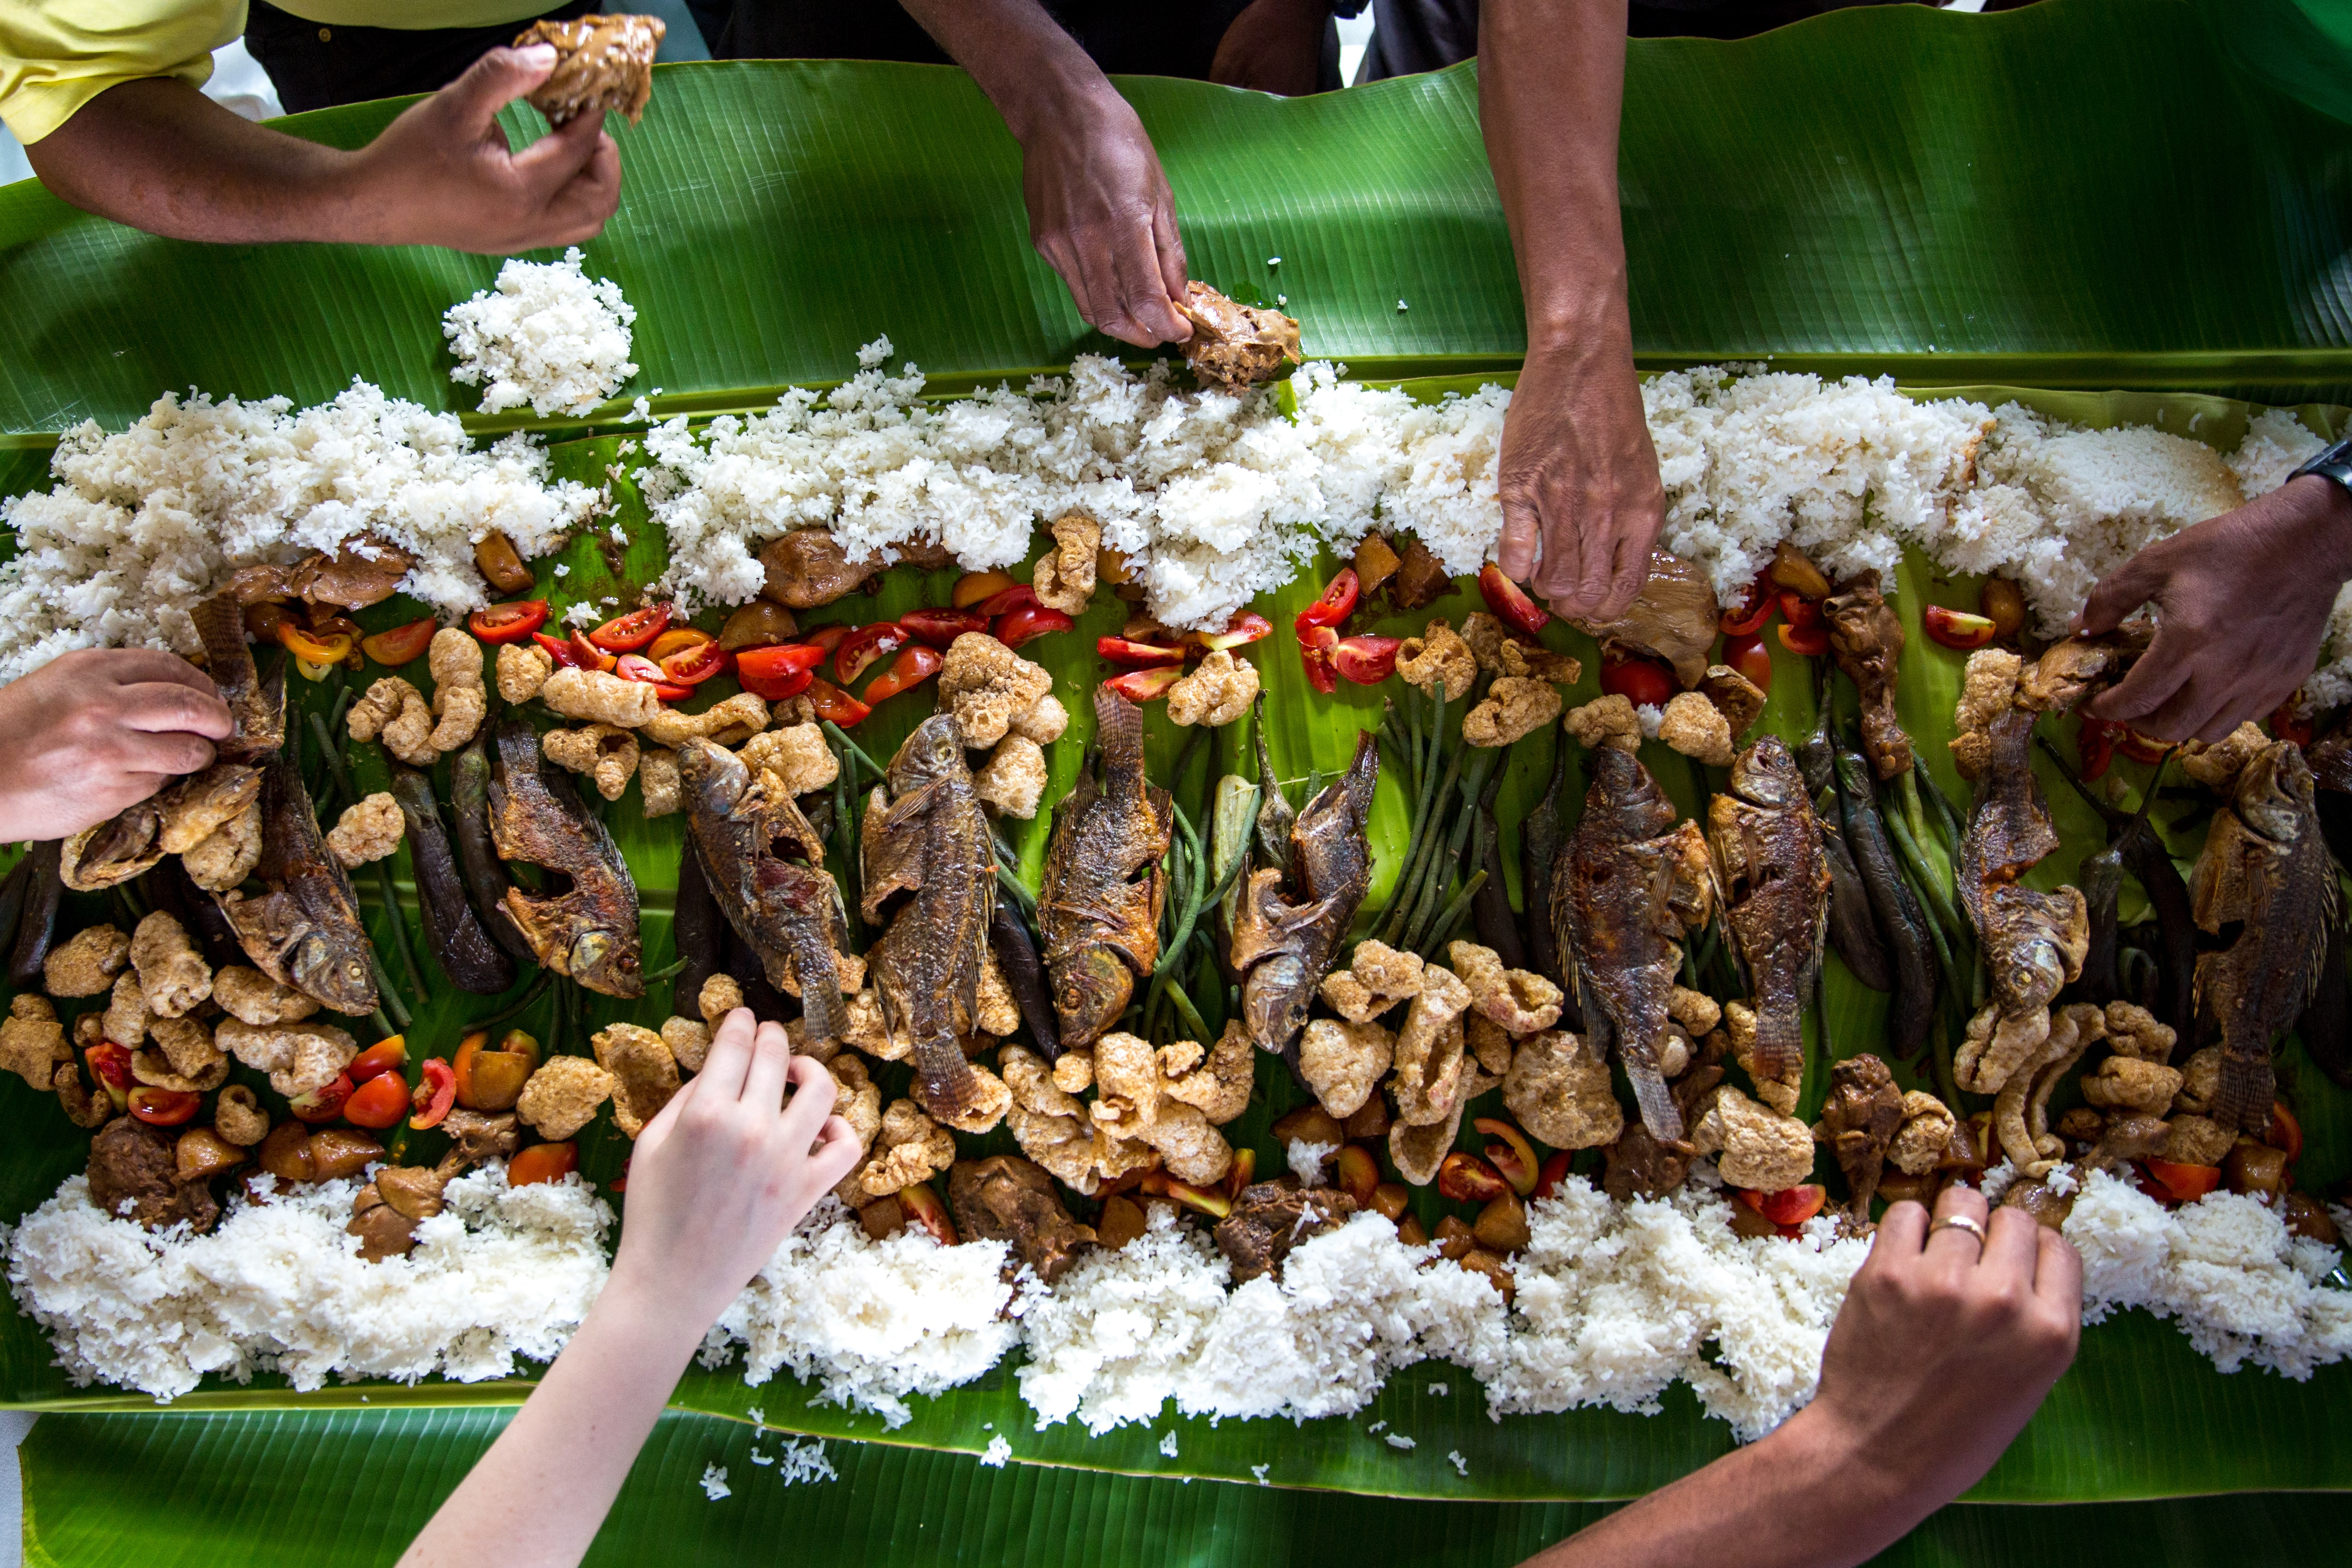 Several people eating fish, rice and vegetables from a large leaf